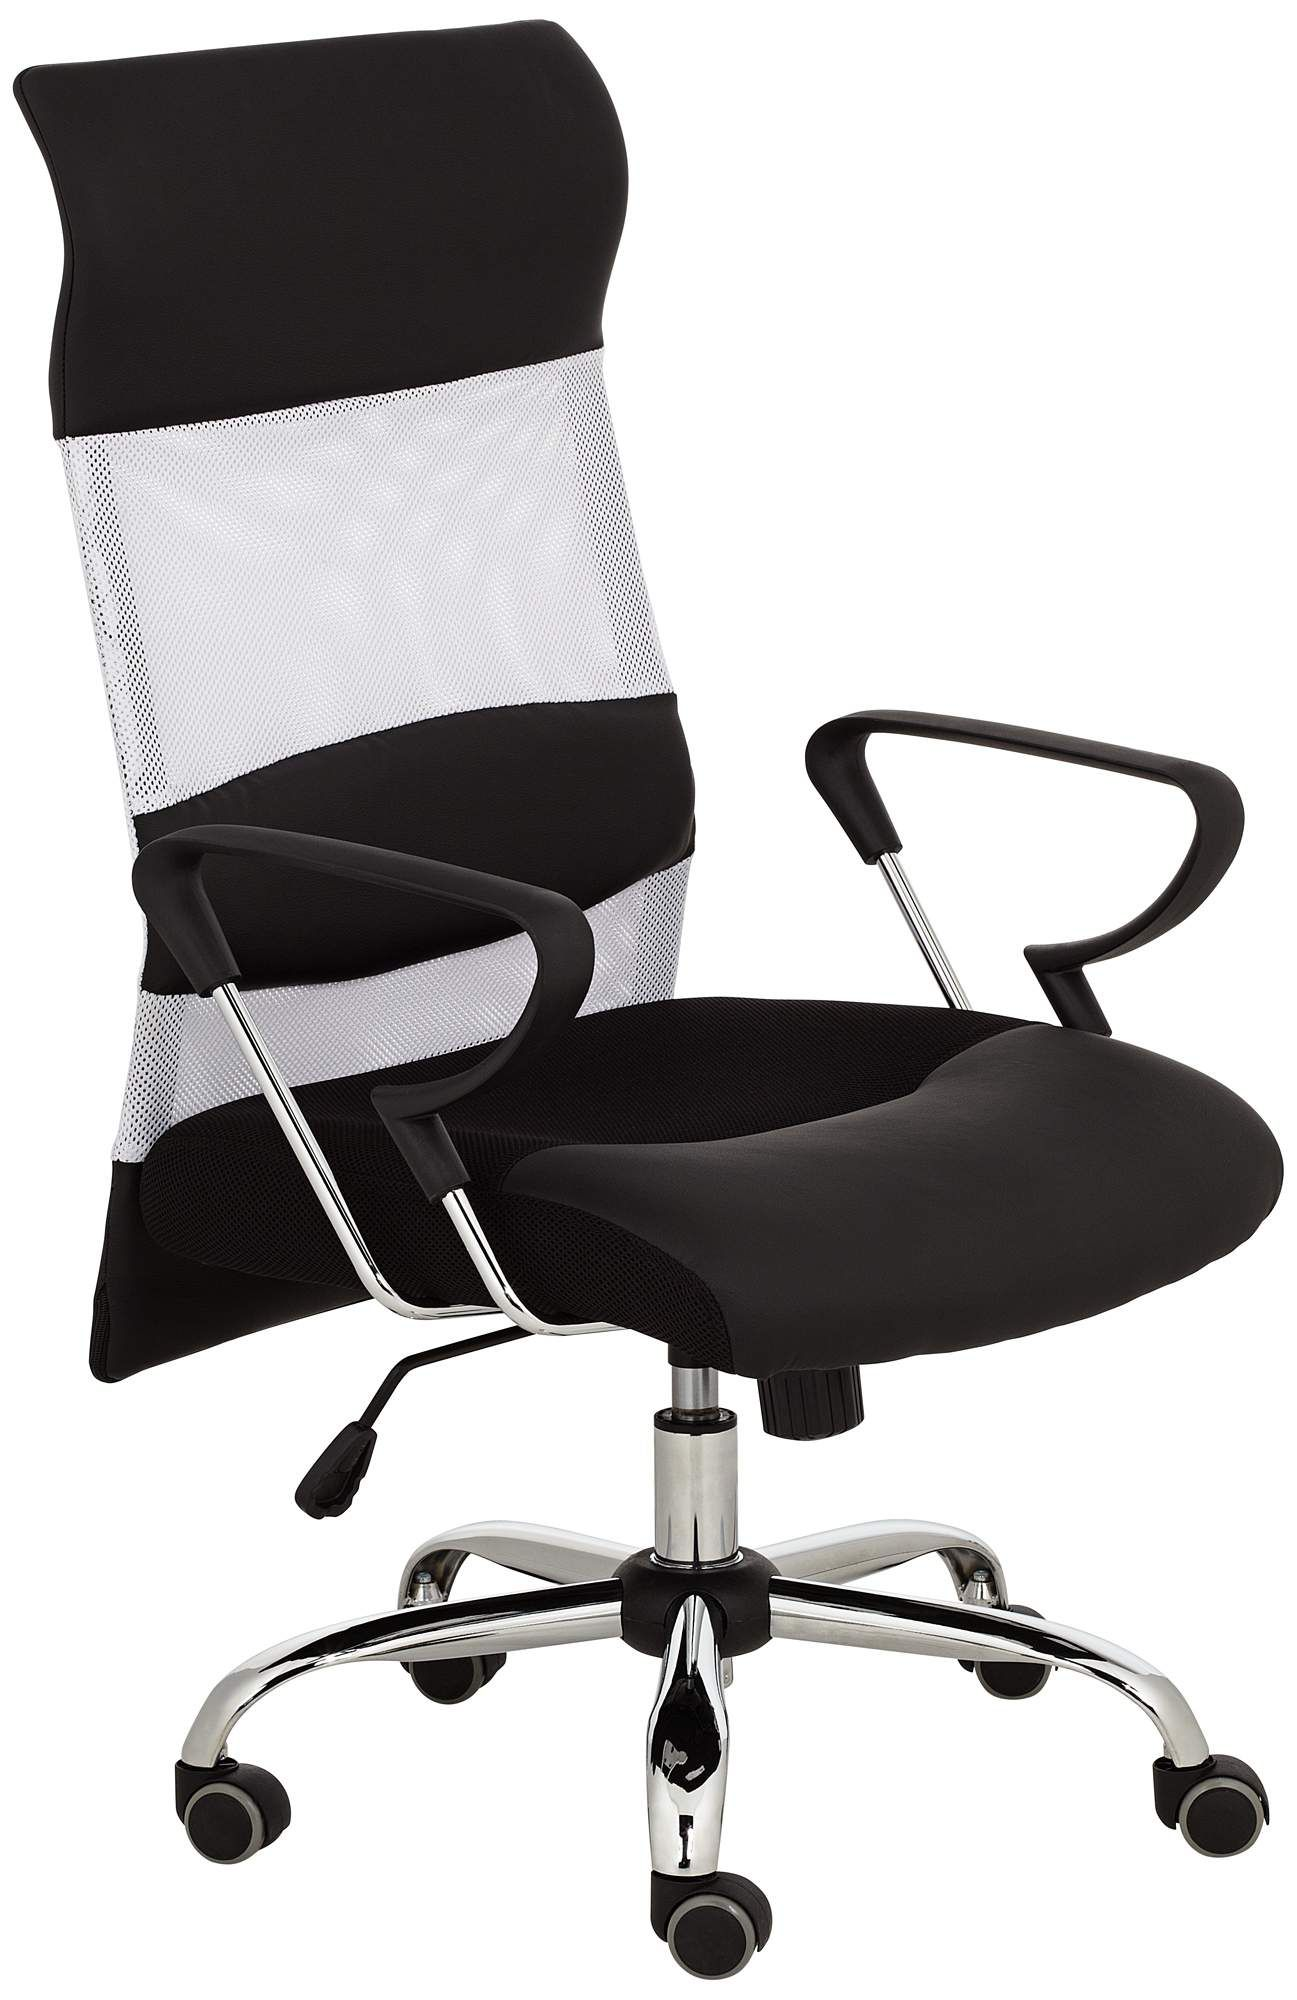 Black and white mesh back office chair 55downingstreet